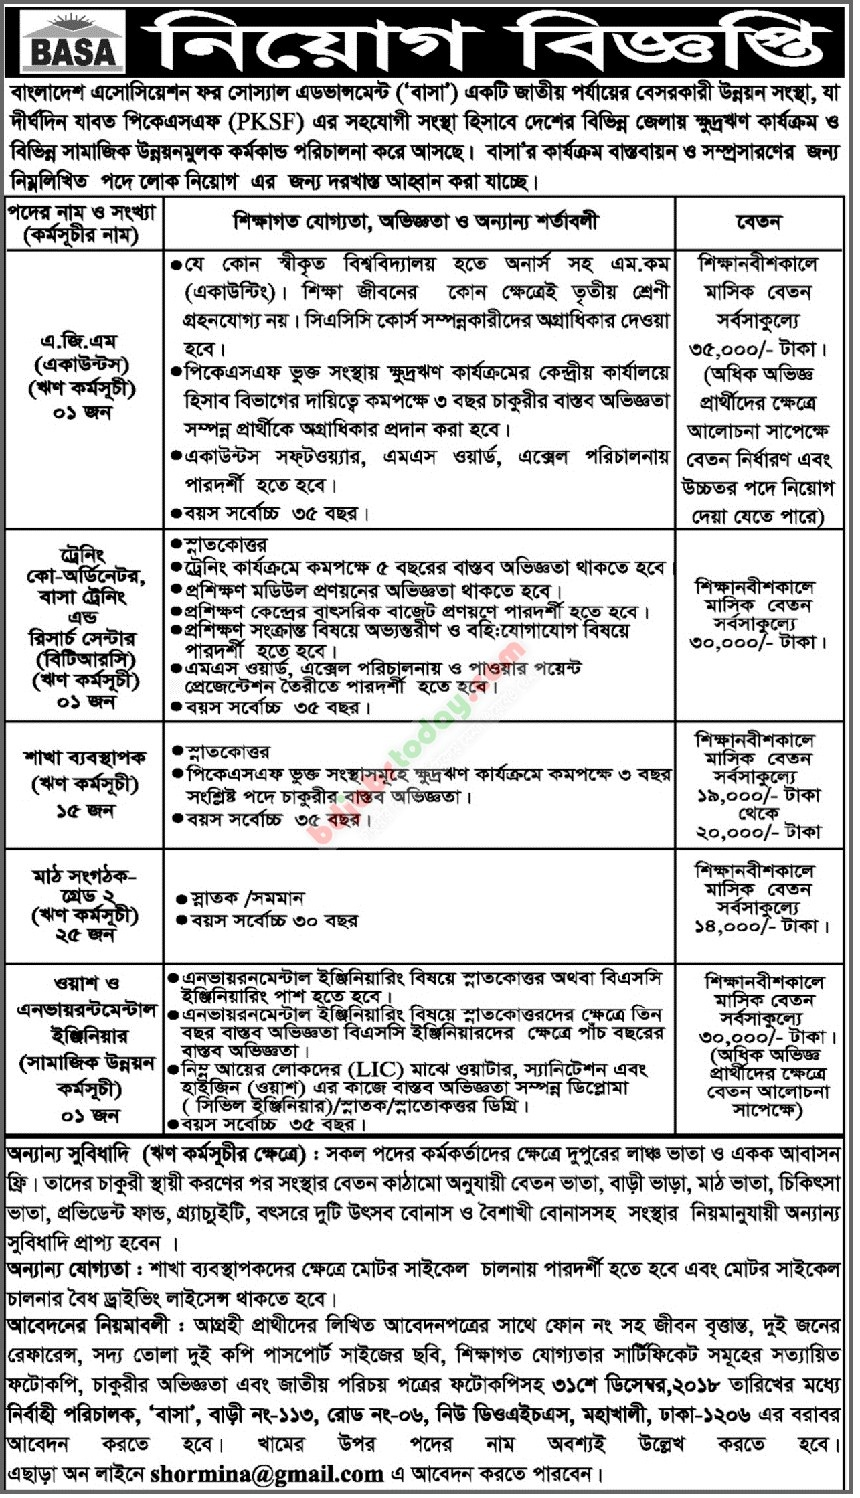 Bangladesh Association for Social Advancement Job Circular 2018